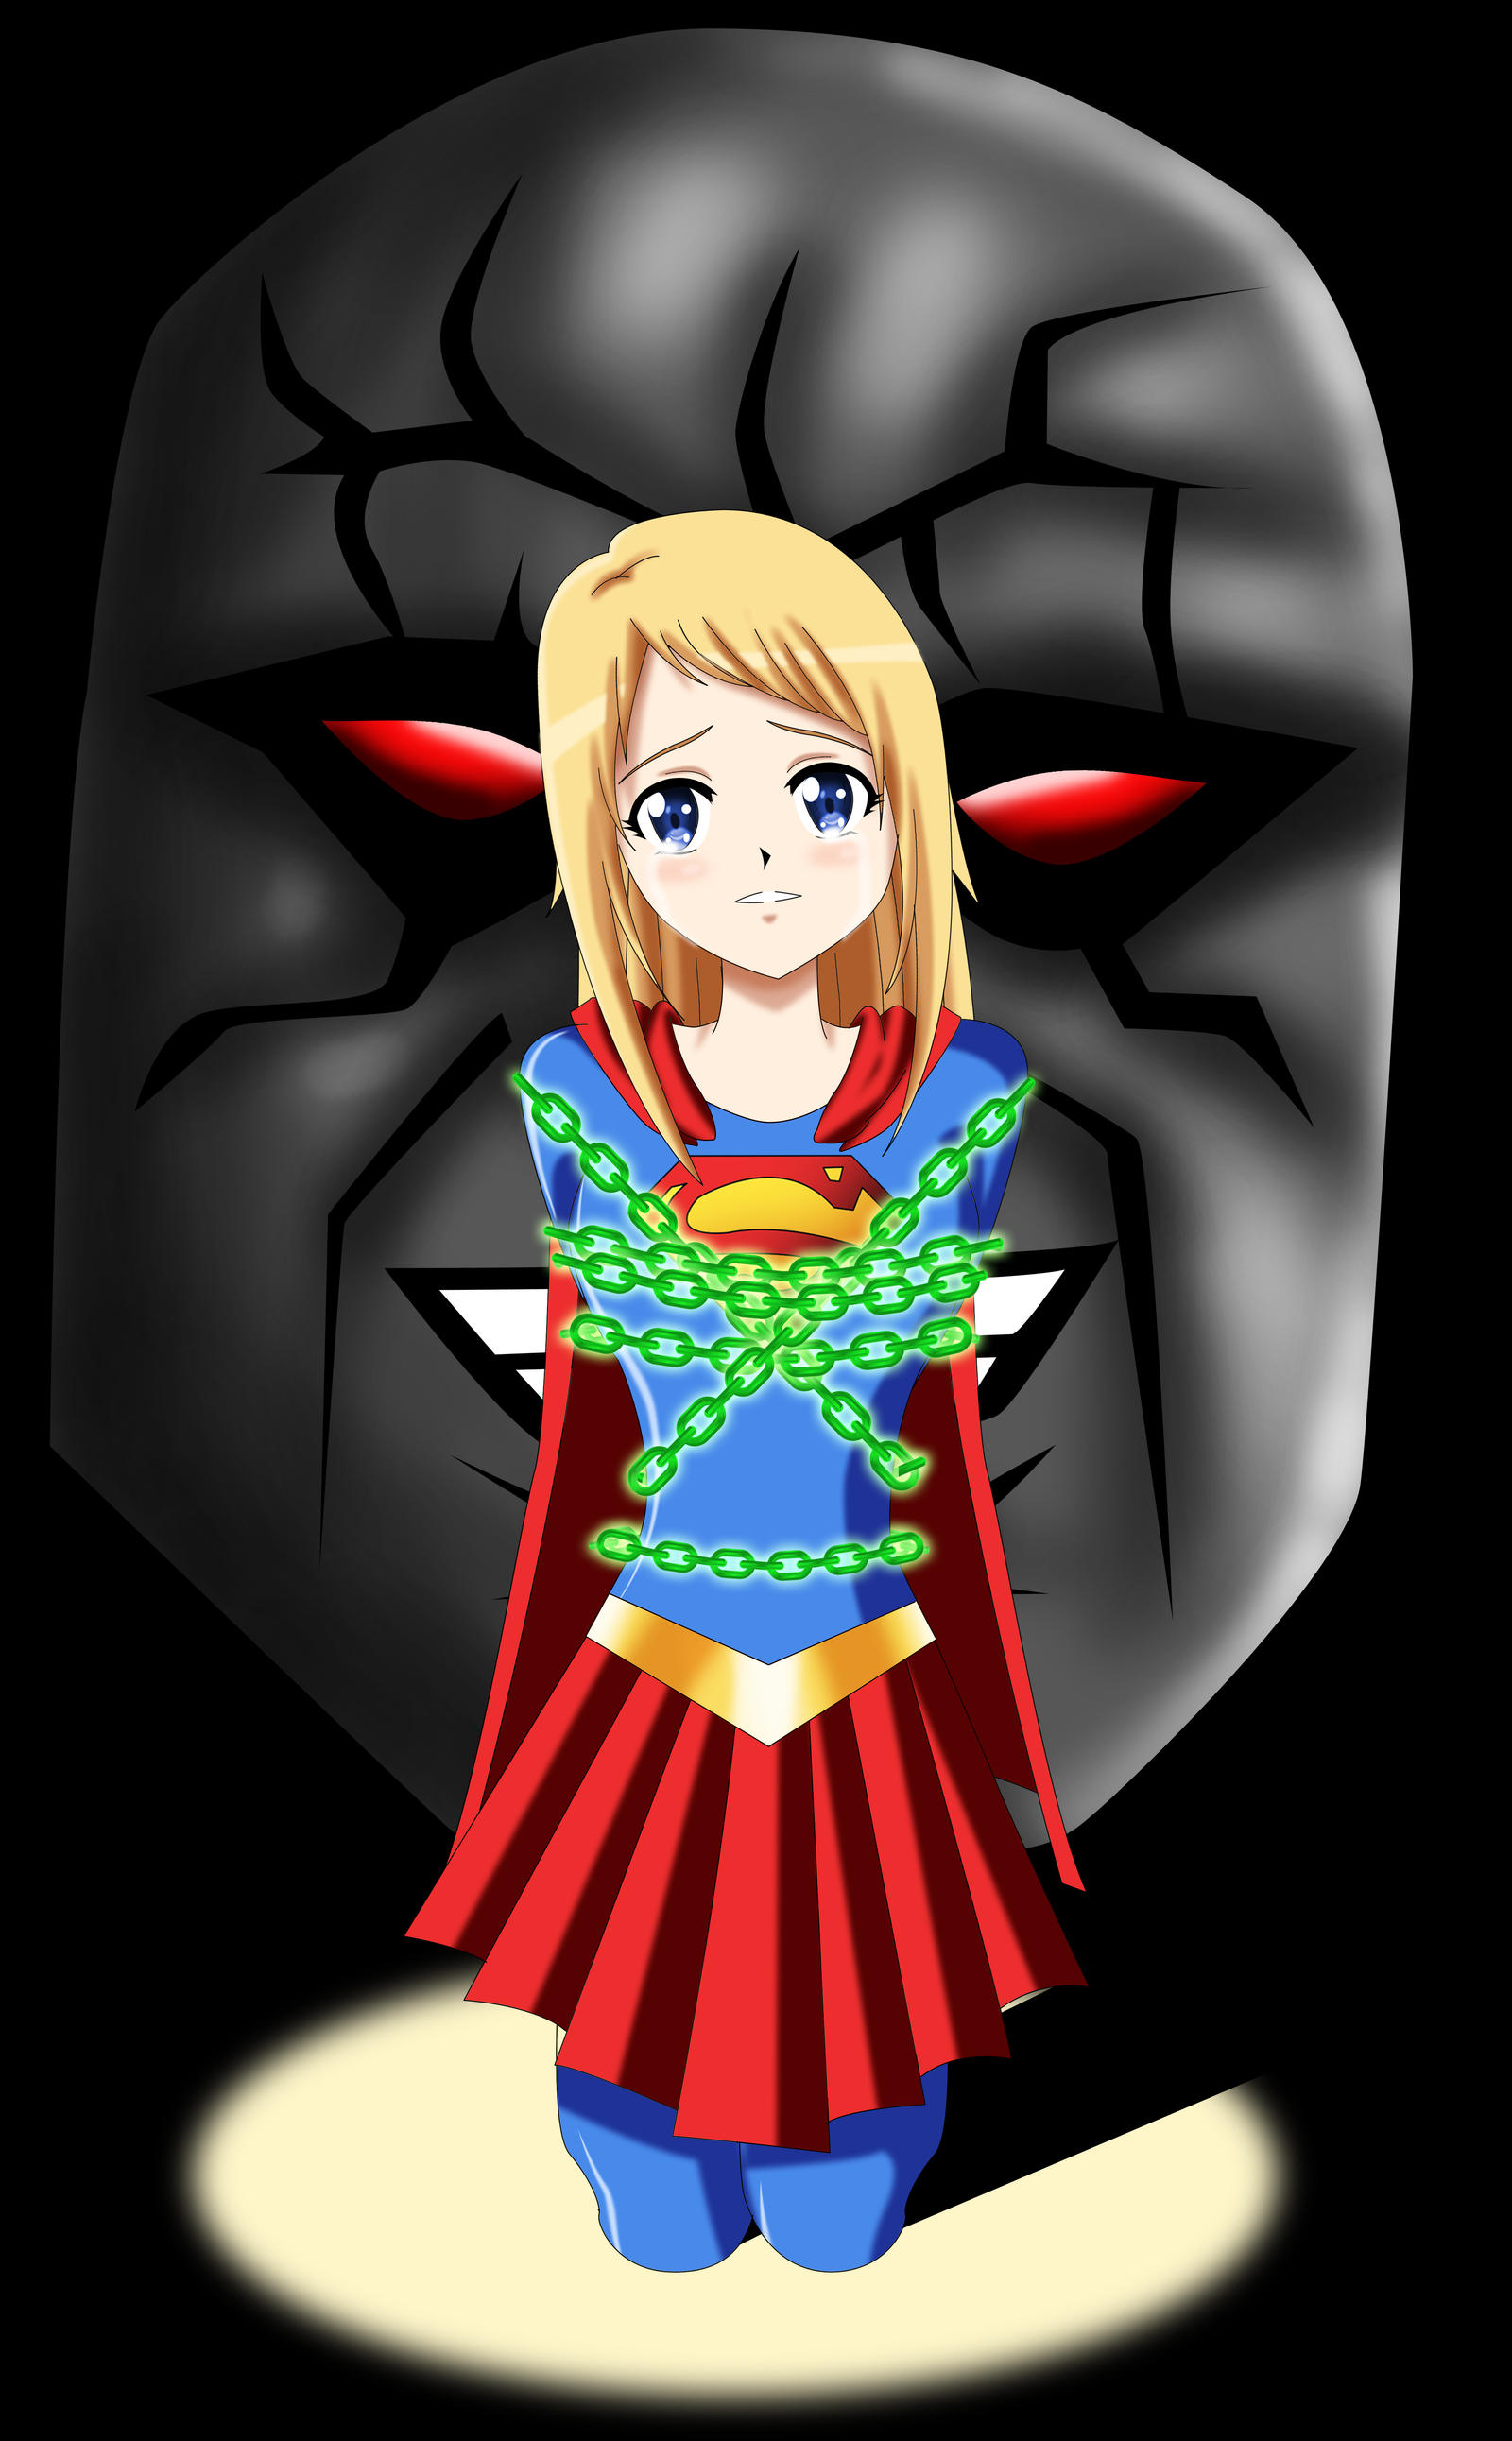 .: Supergirl in Peril :. by Sincity2100 on DeviantArt